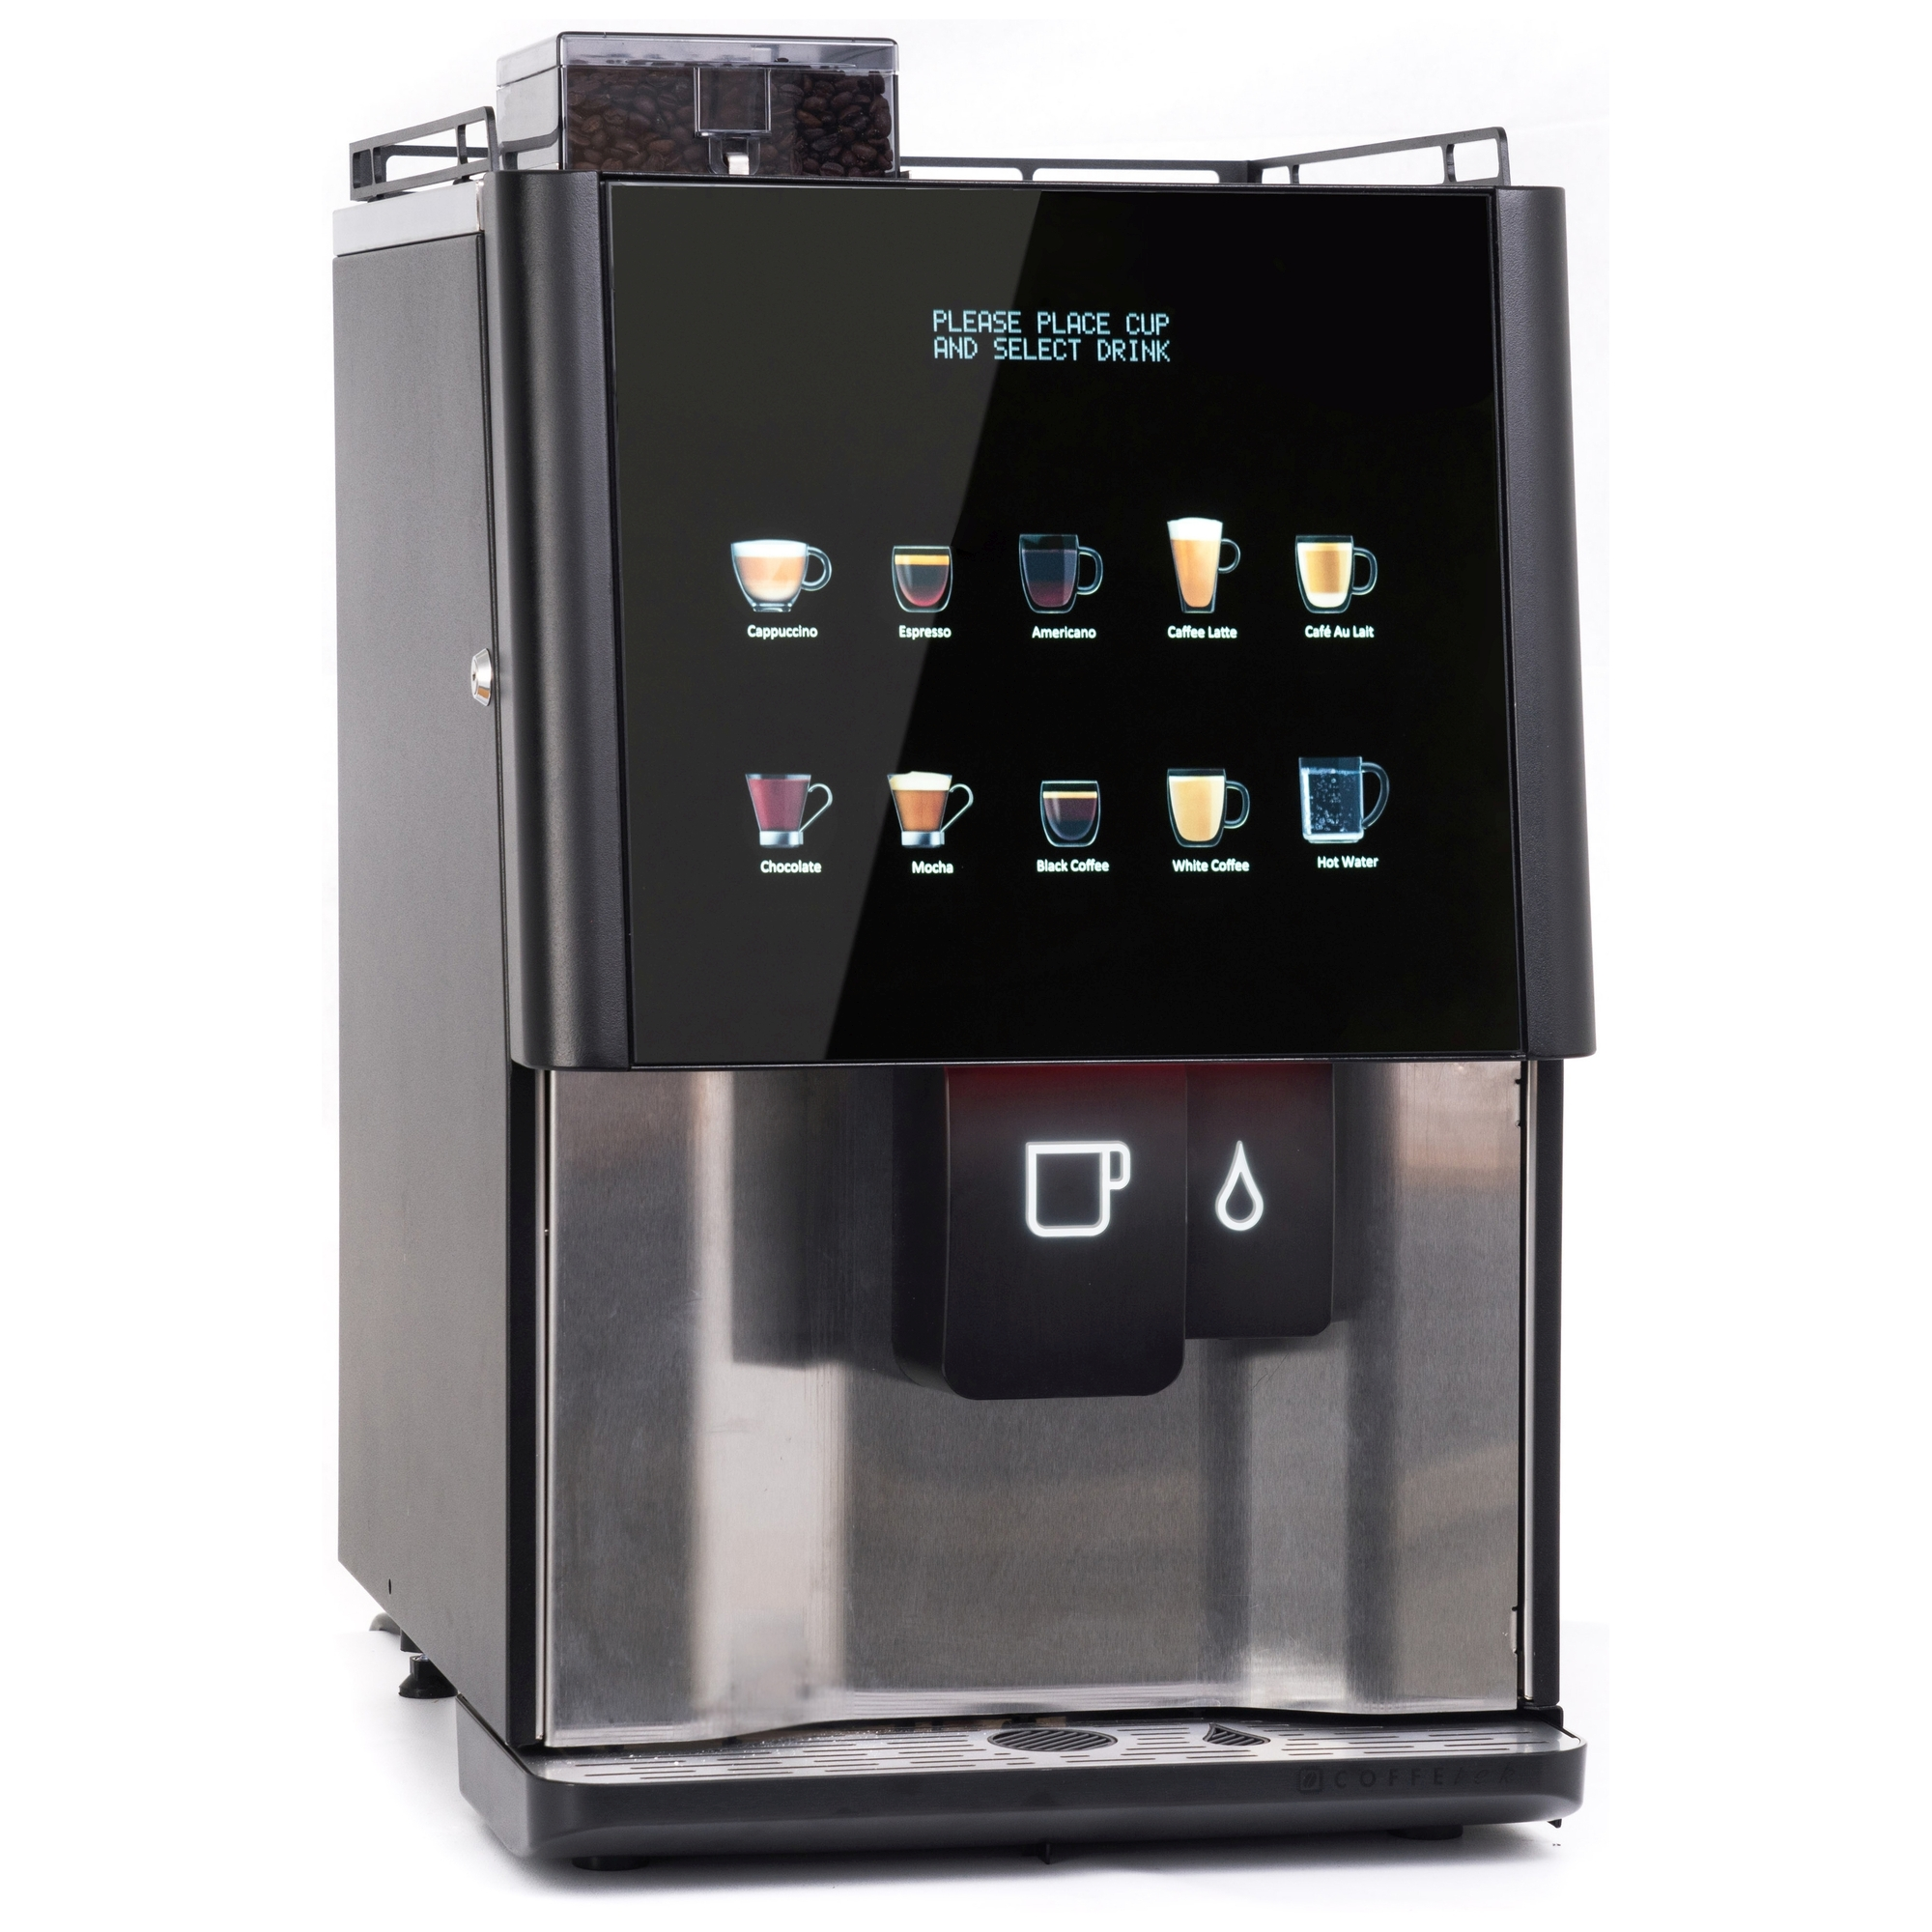 Vitro X3 Coffee Machine